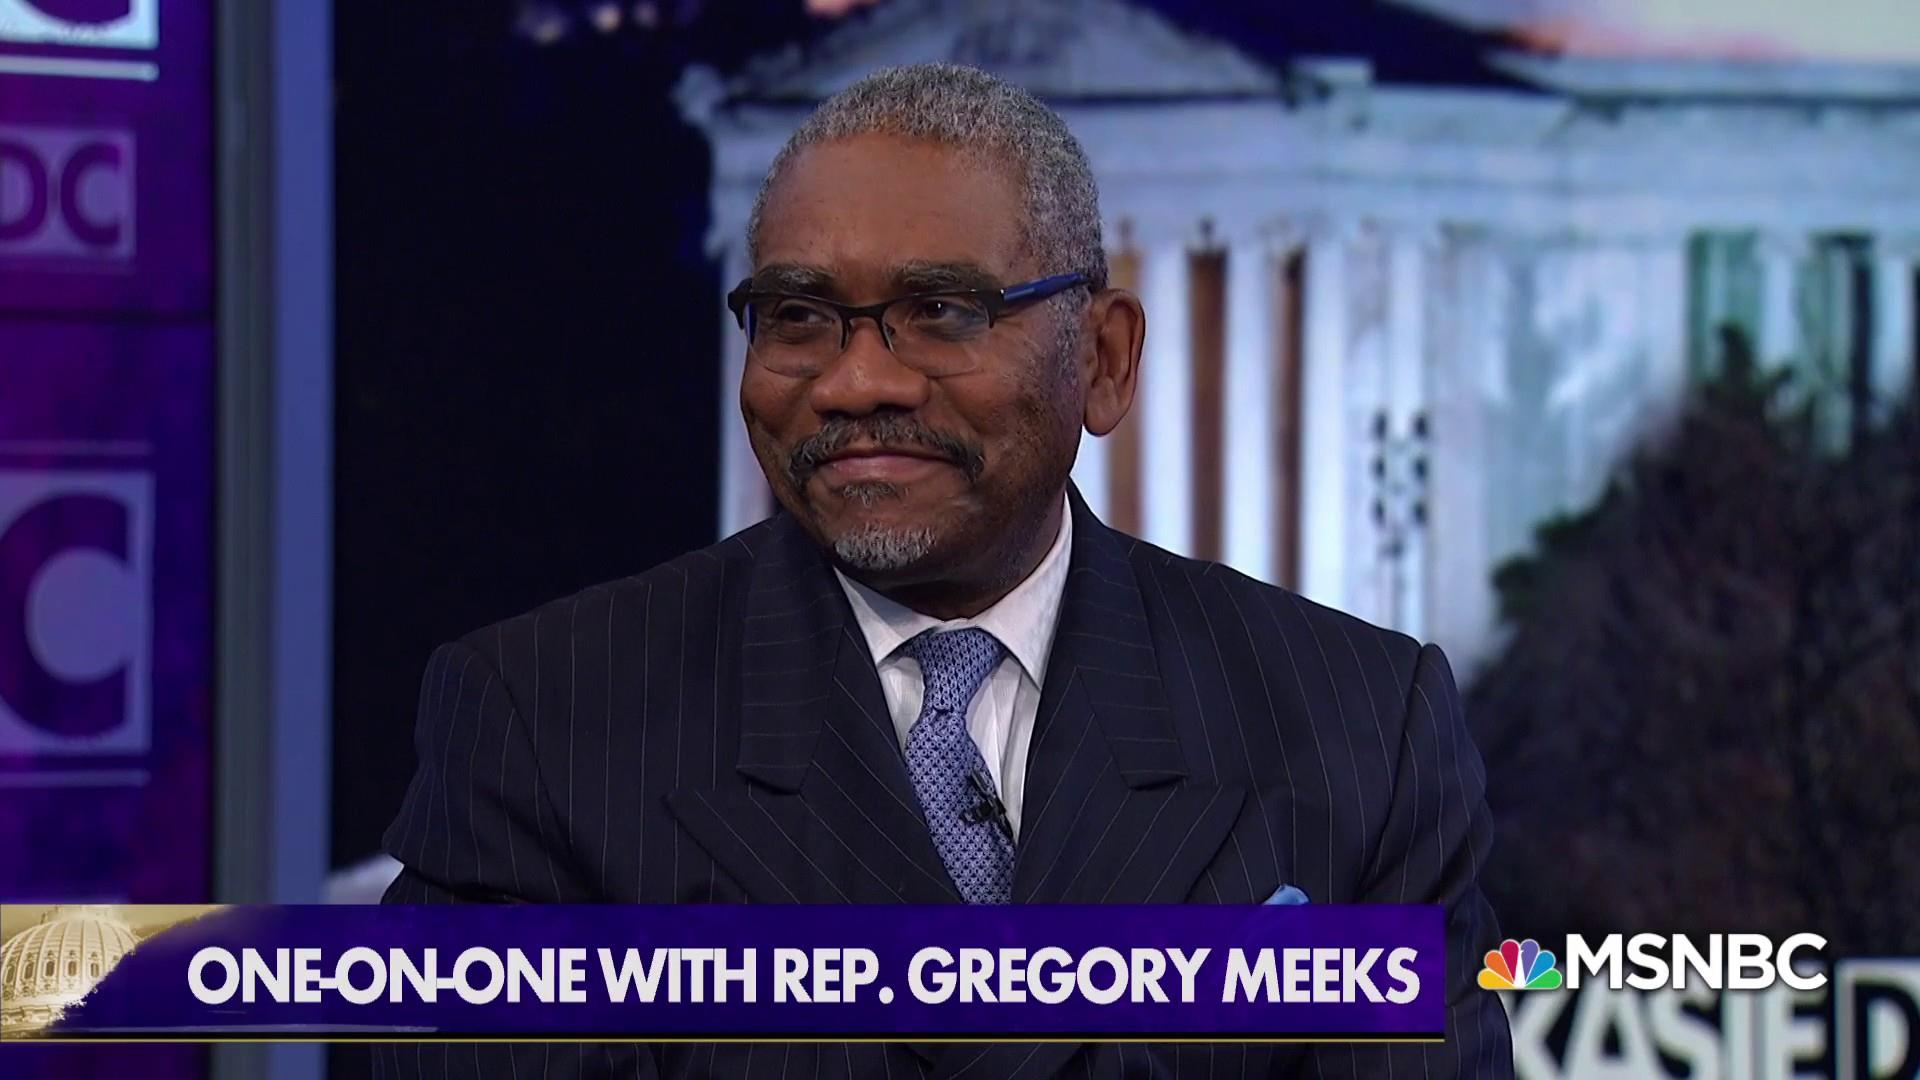 Dem Rep. Meeks criticizes Sanders' outreach to black voters in 2016